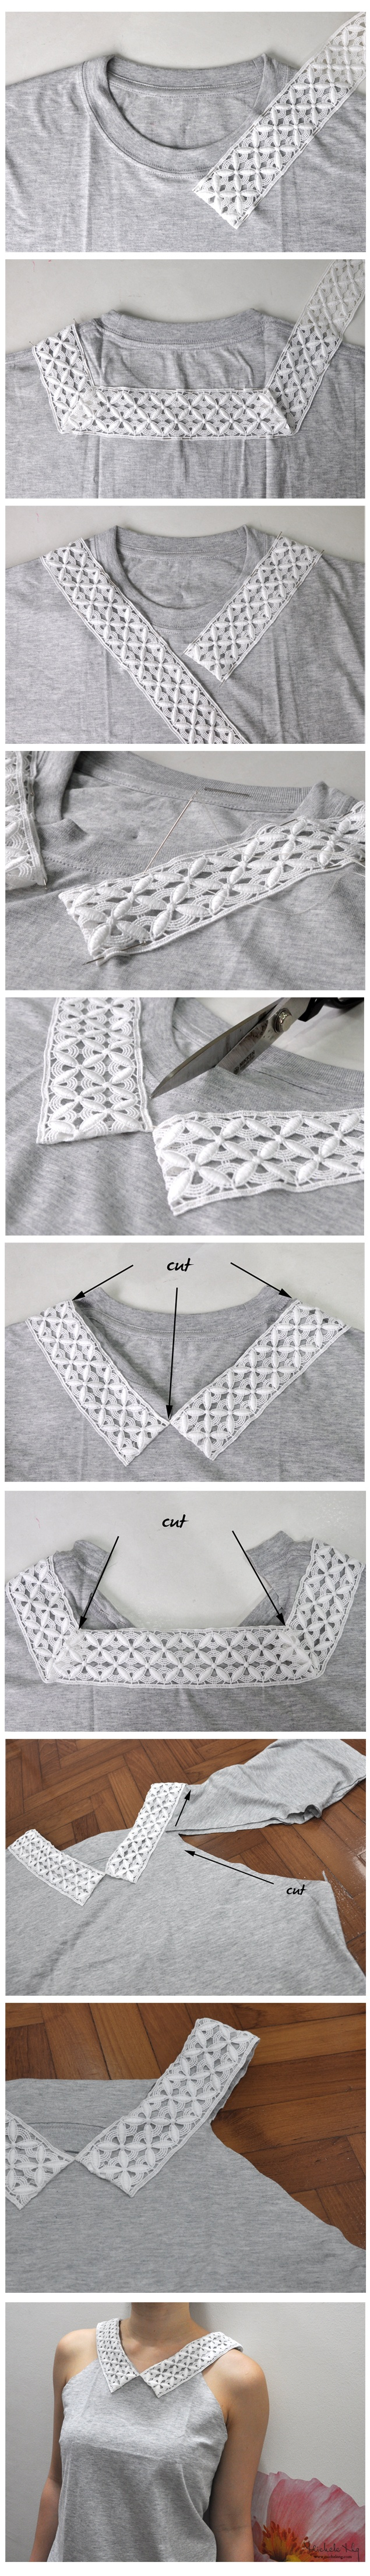 How-to-upcycle-a-plain-tee